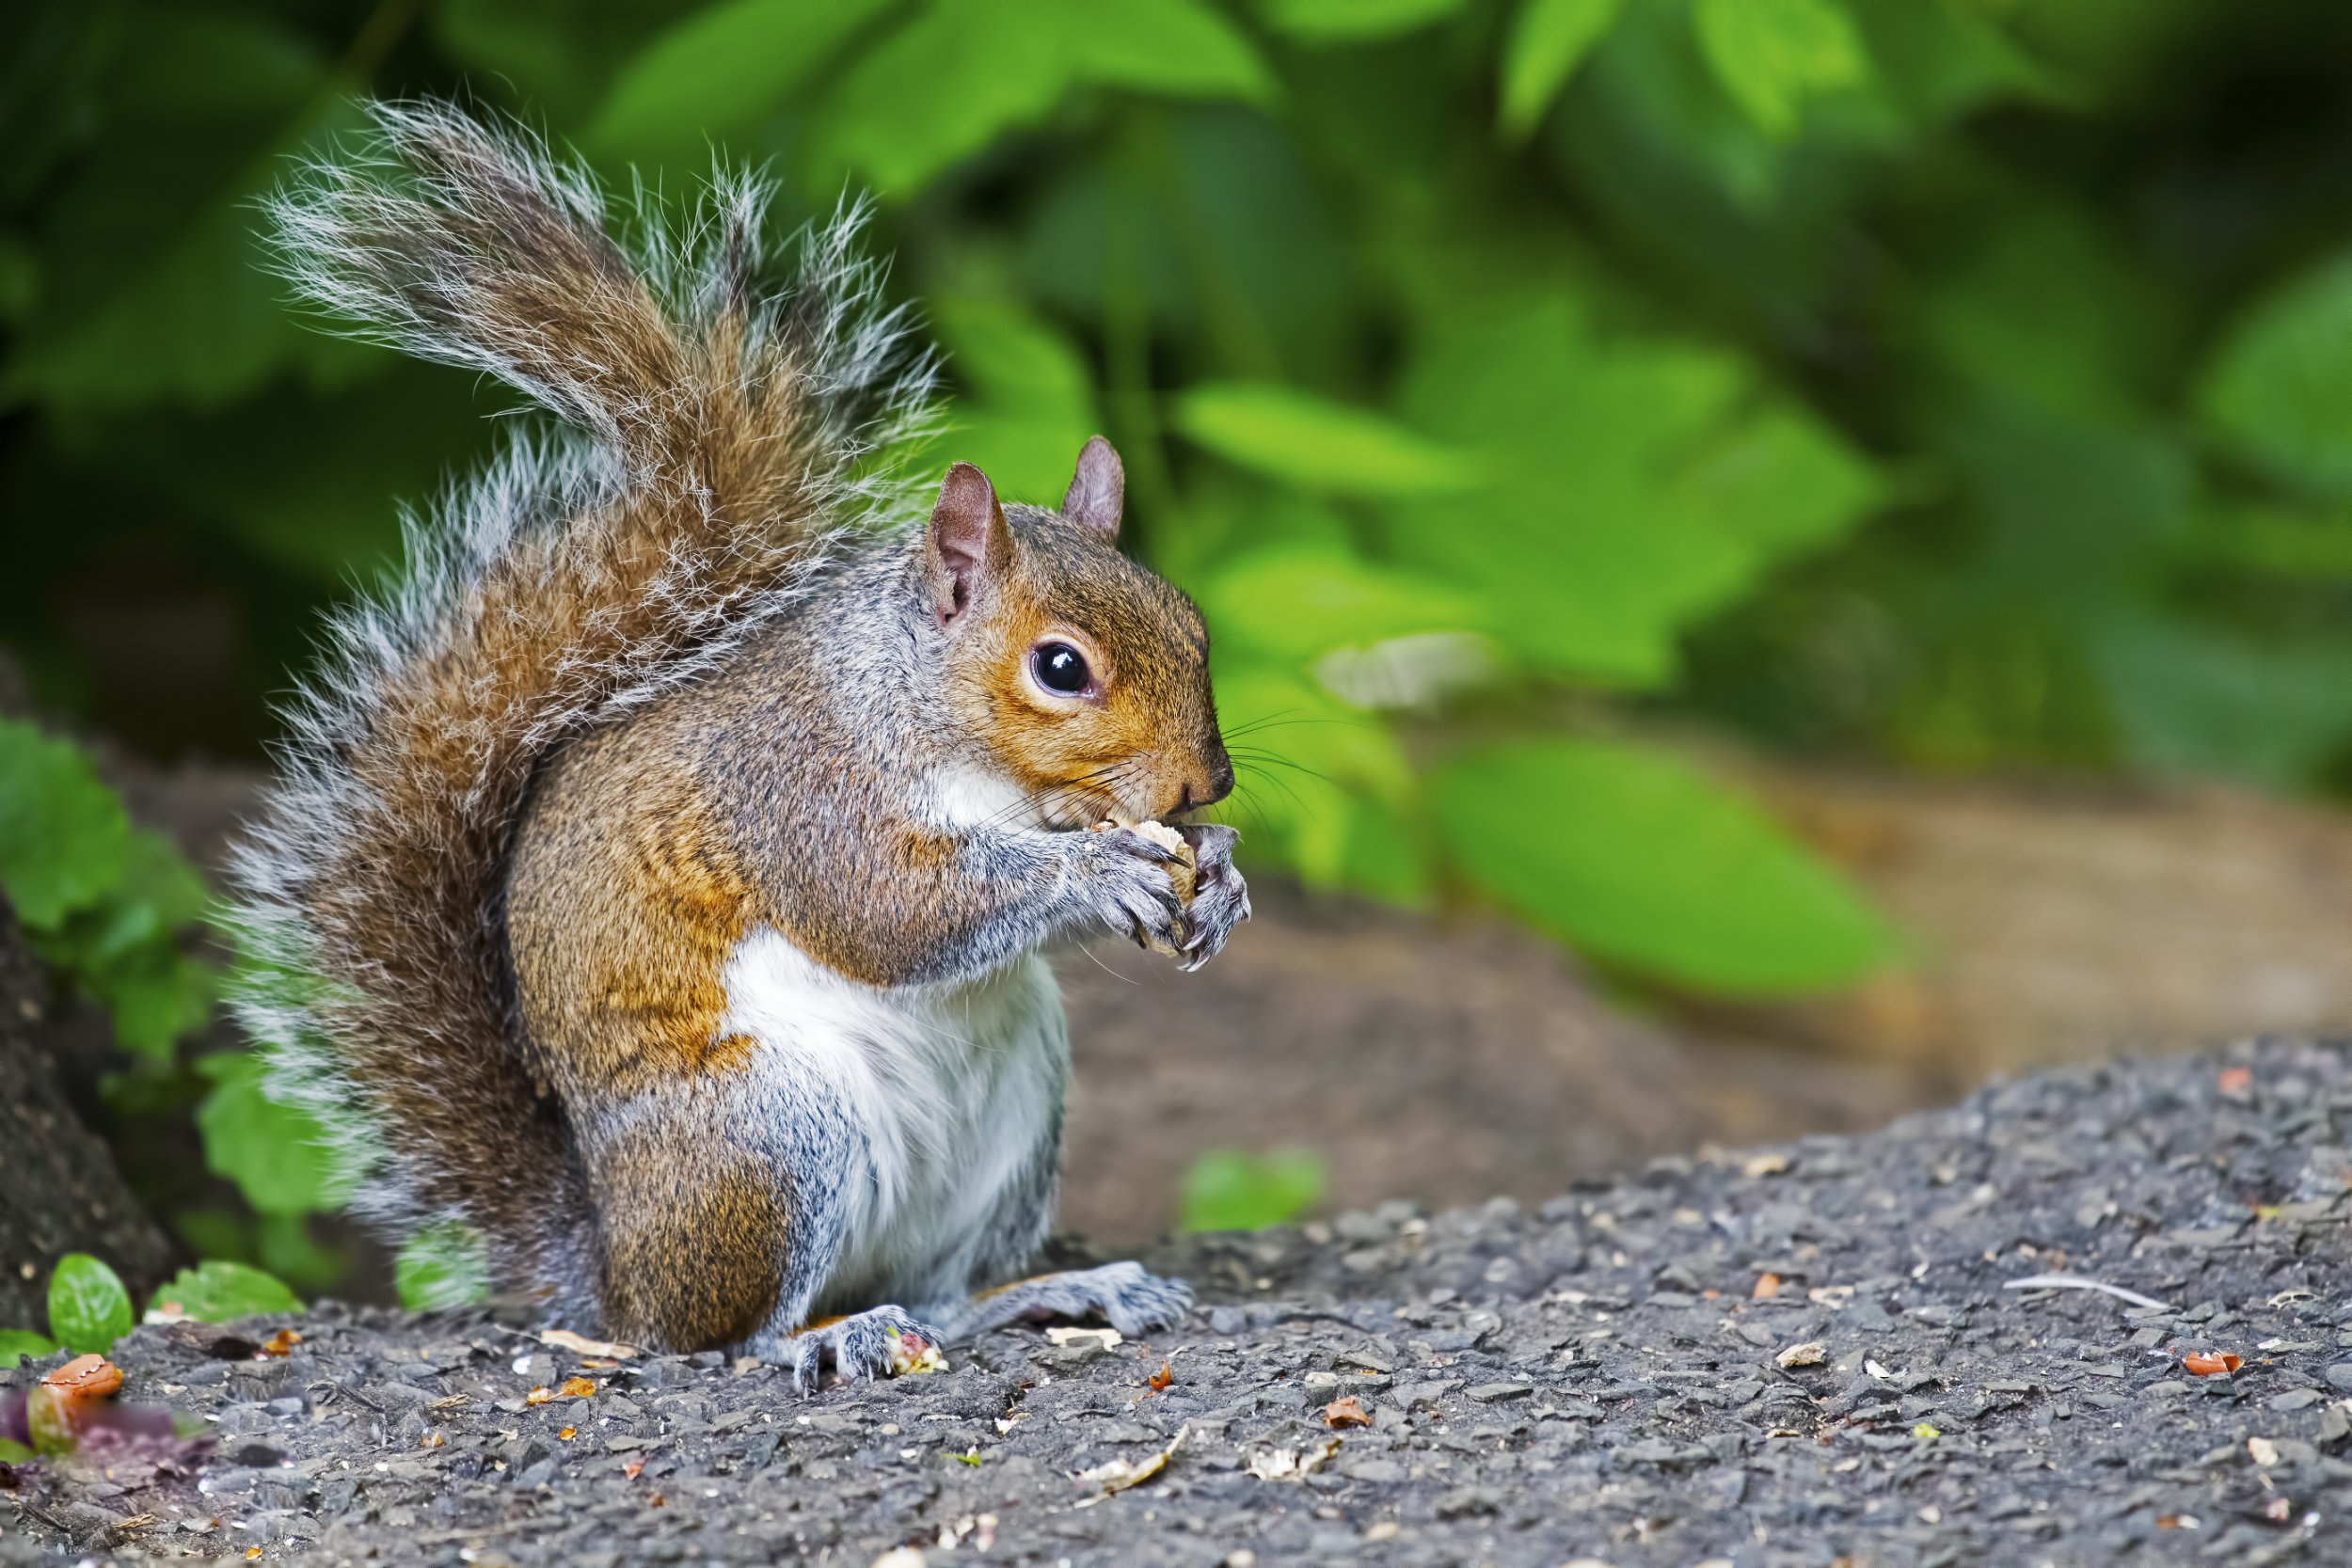 Hunter died of mad cow-like disease after eating squirrel's brain